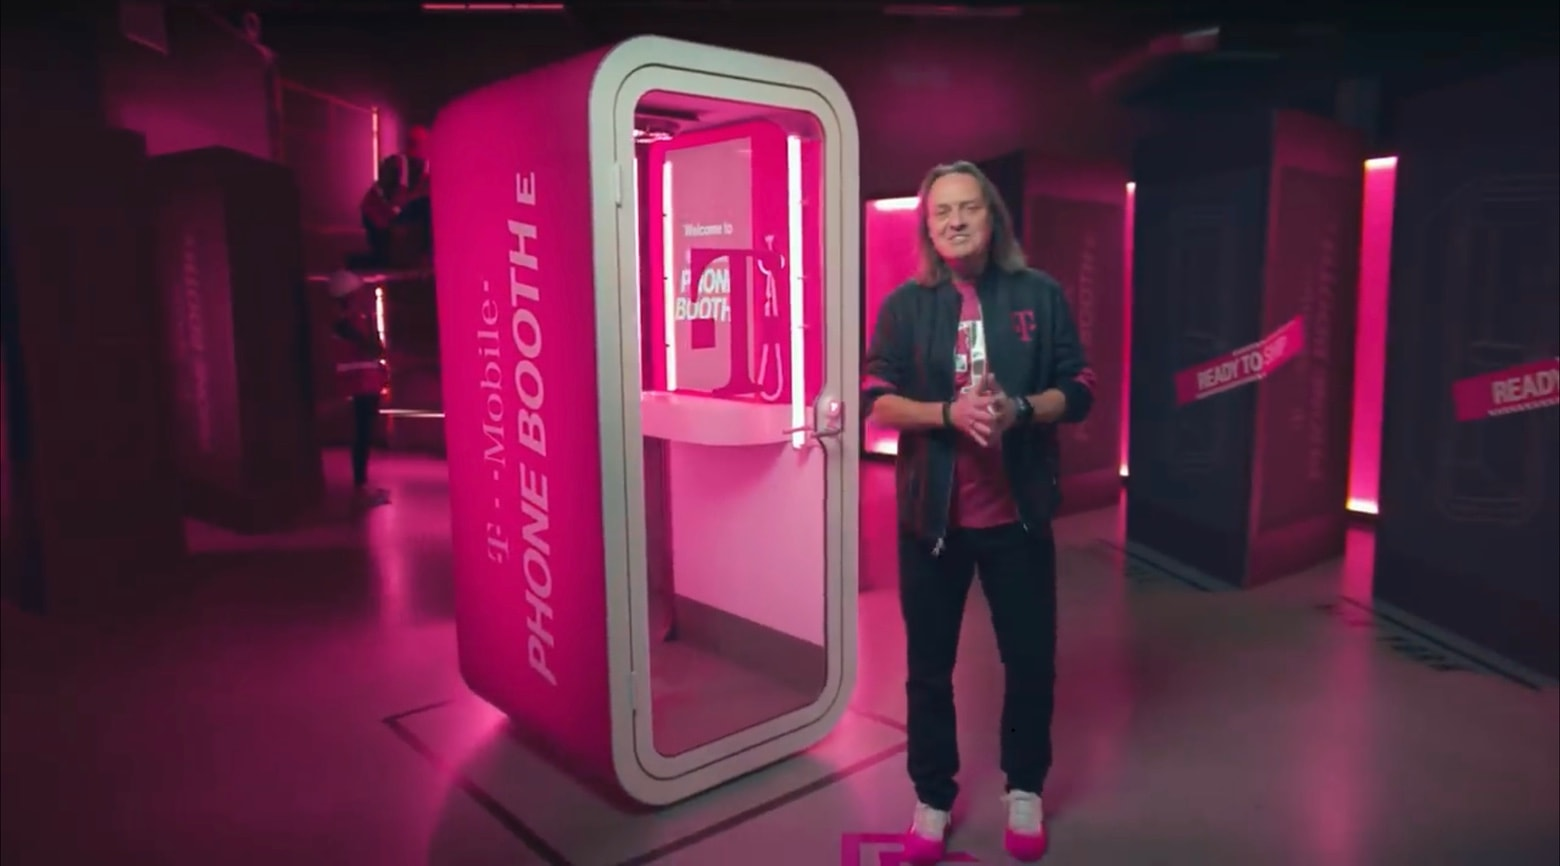 T-Mobile CEO John Legere with the Phone BoothE.